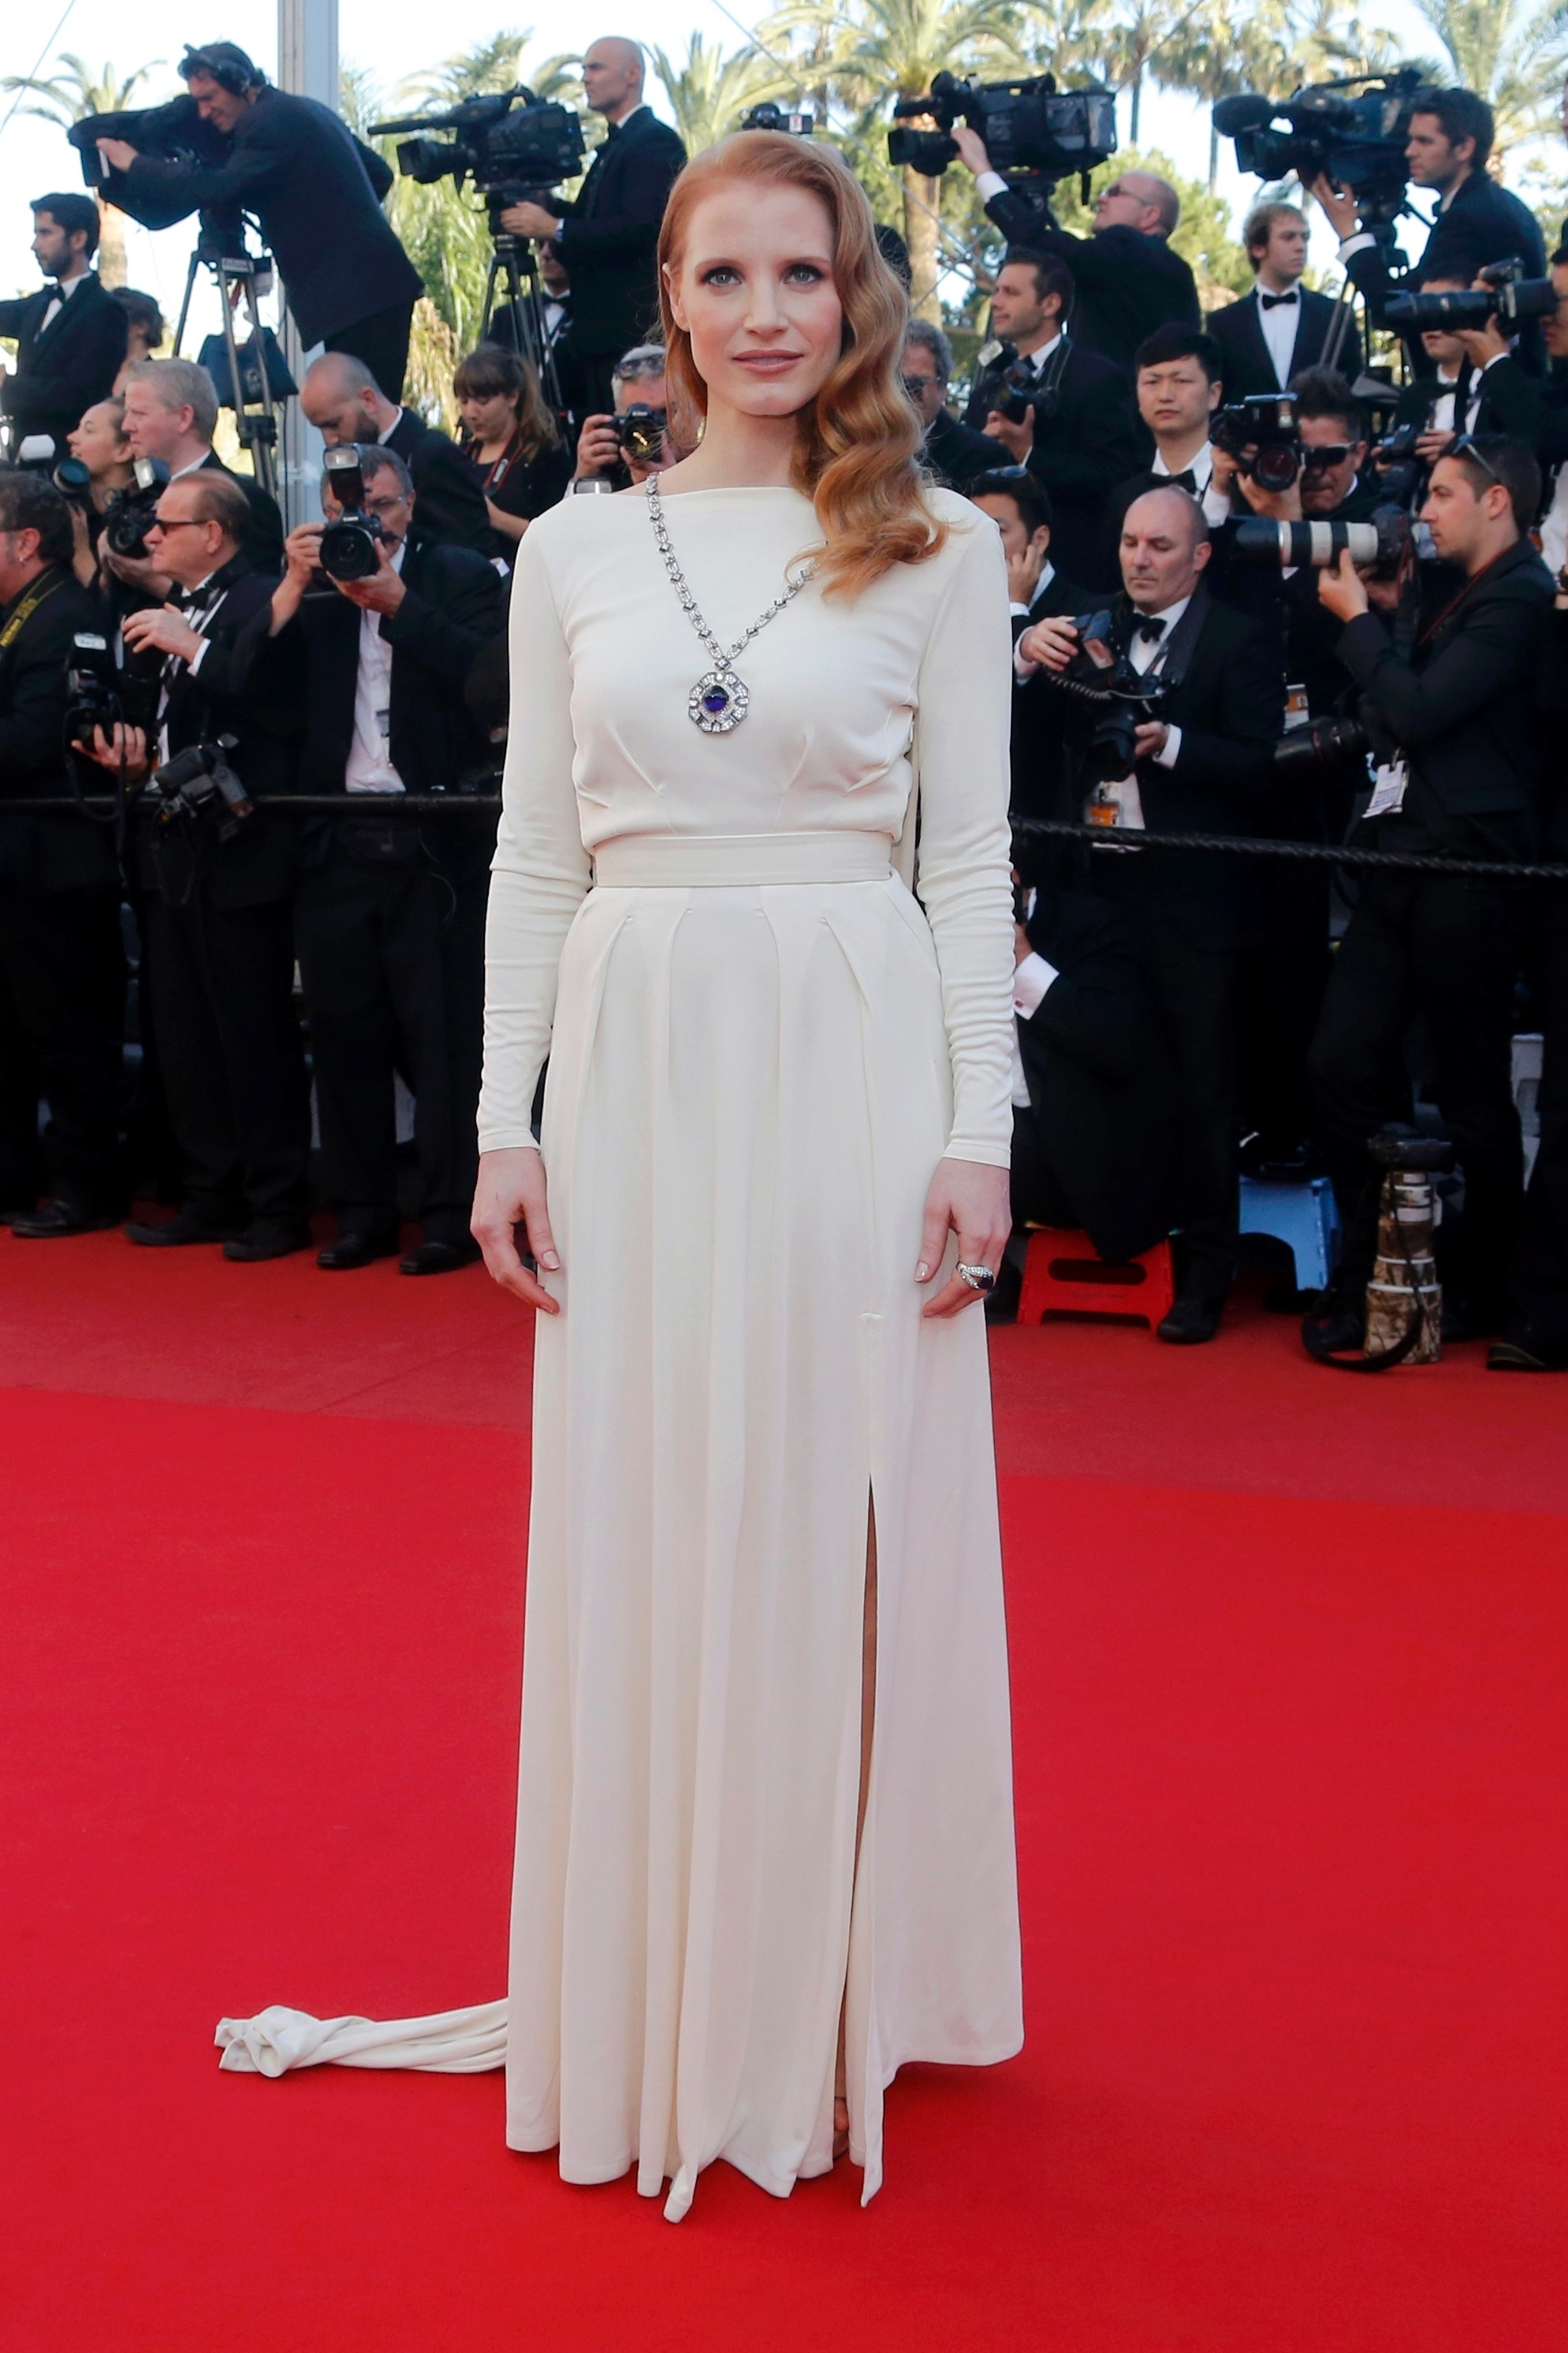 Jessica Chastain at Cannes